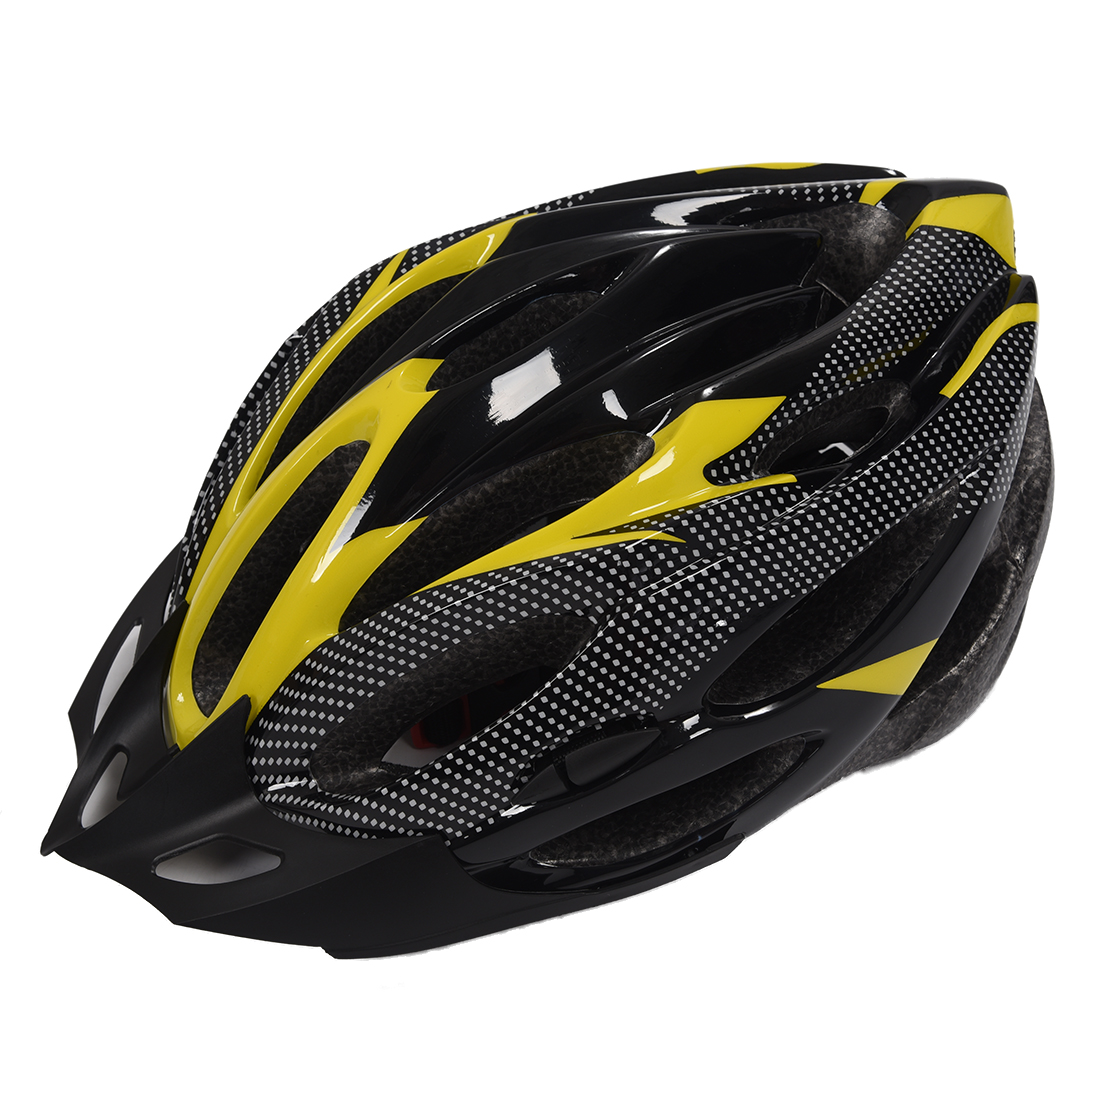 Jsz Sports Bike Bicycle Cycling Safety Helmet With